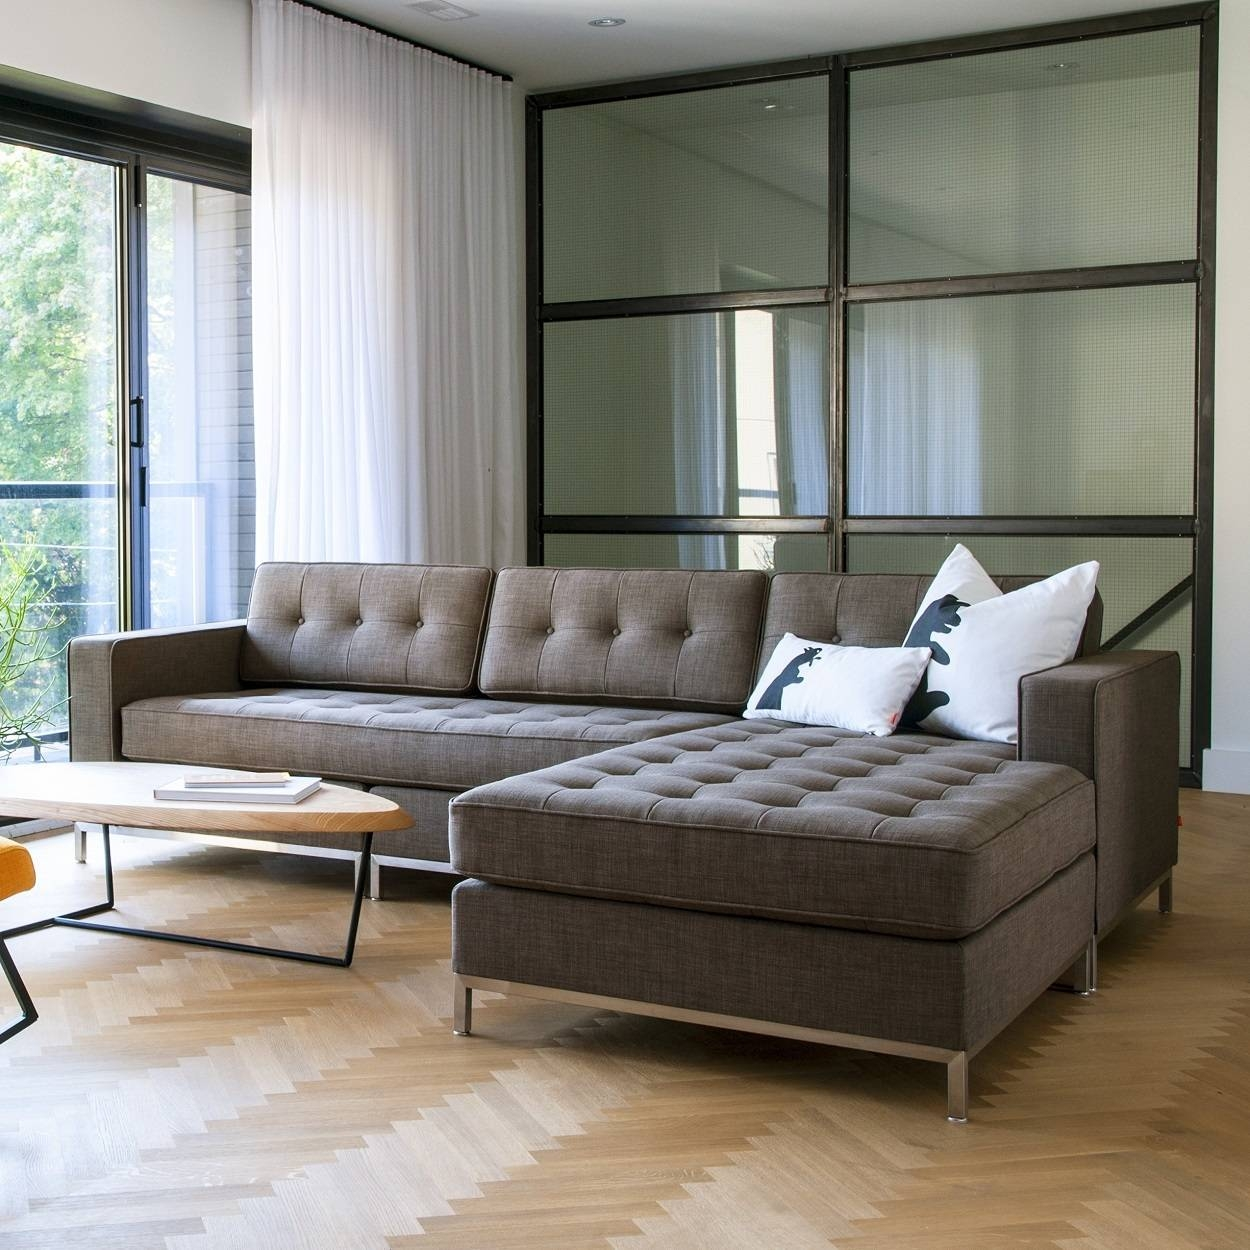 Gus Modern Furniture 2015 Summer Sale | Zin Home Blog regarding Bisectional Sofa (Image 7 of 30)